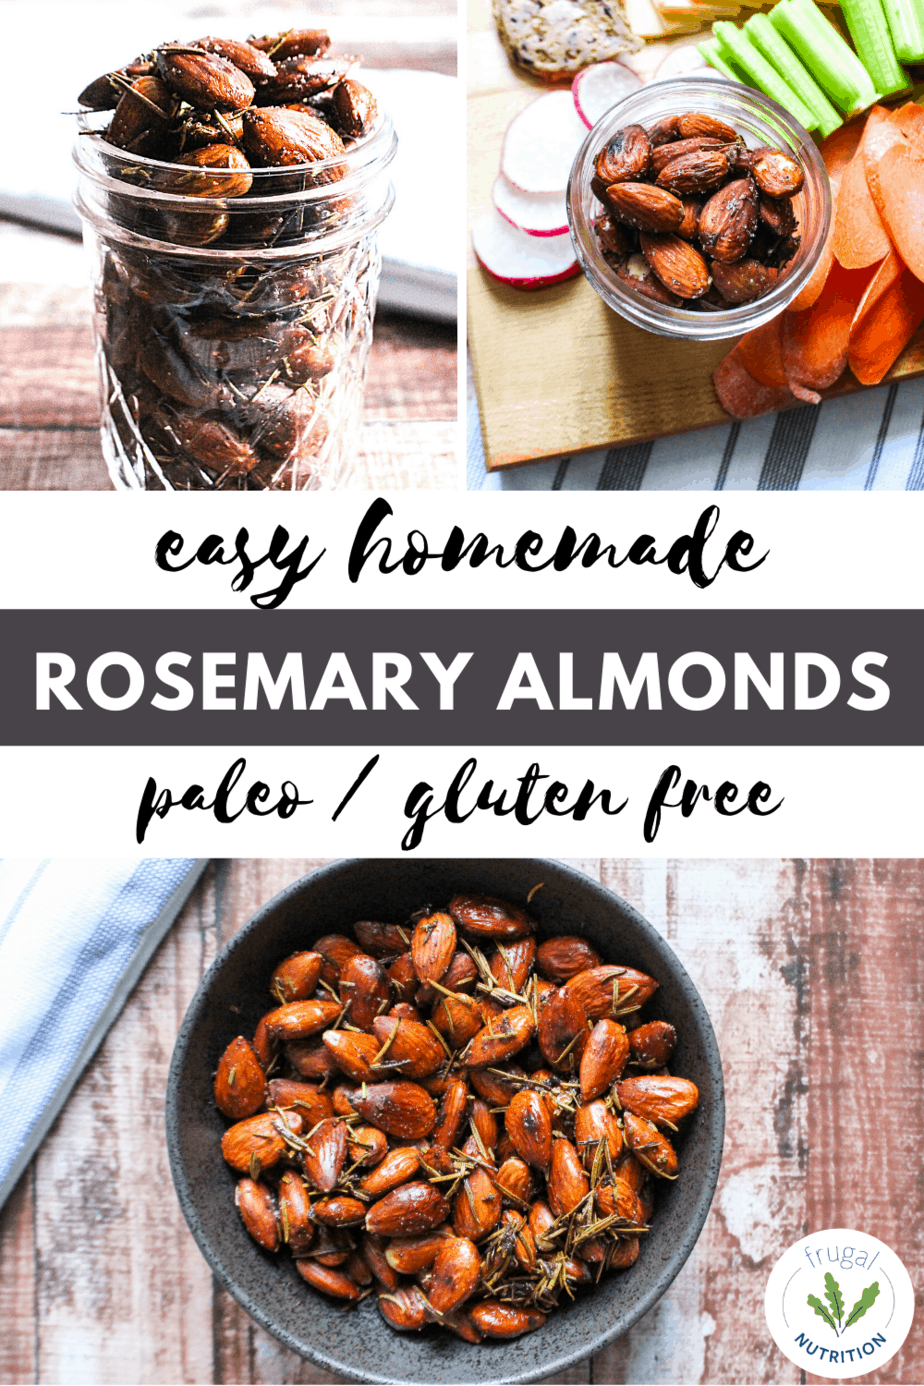 pin with images of rosemary almonds in various containers